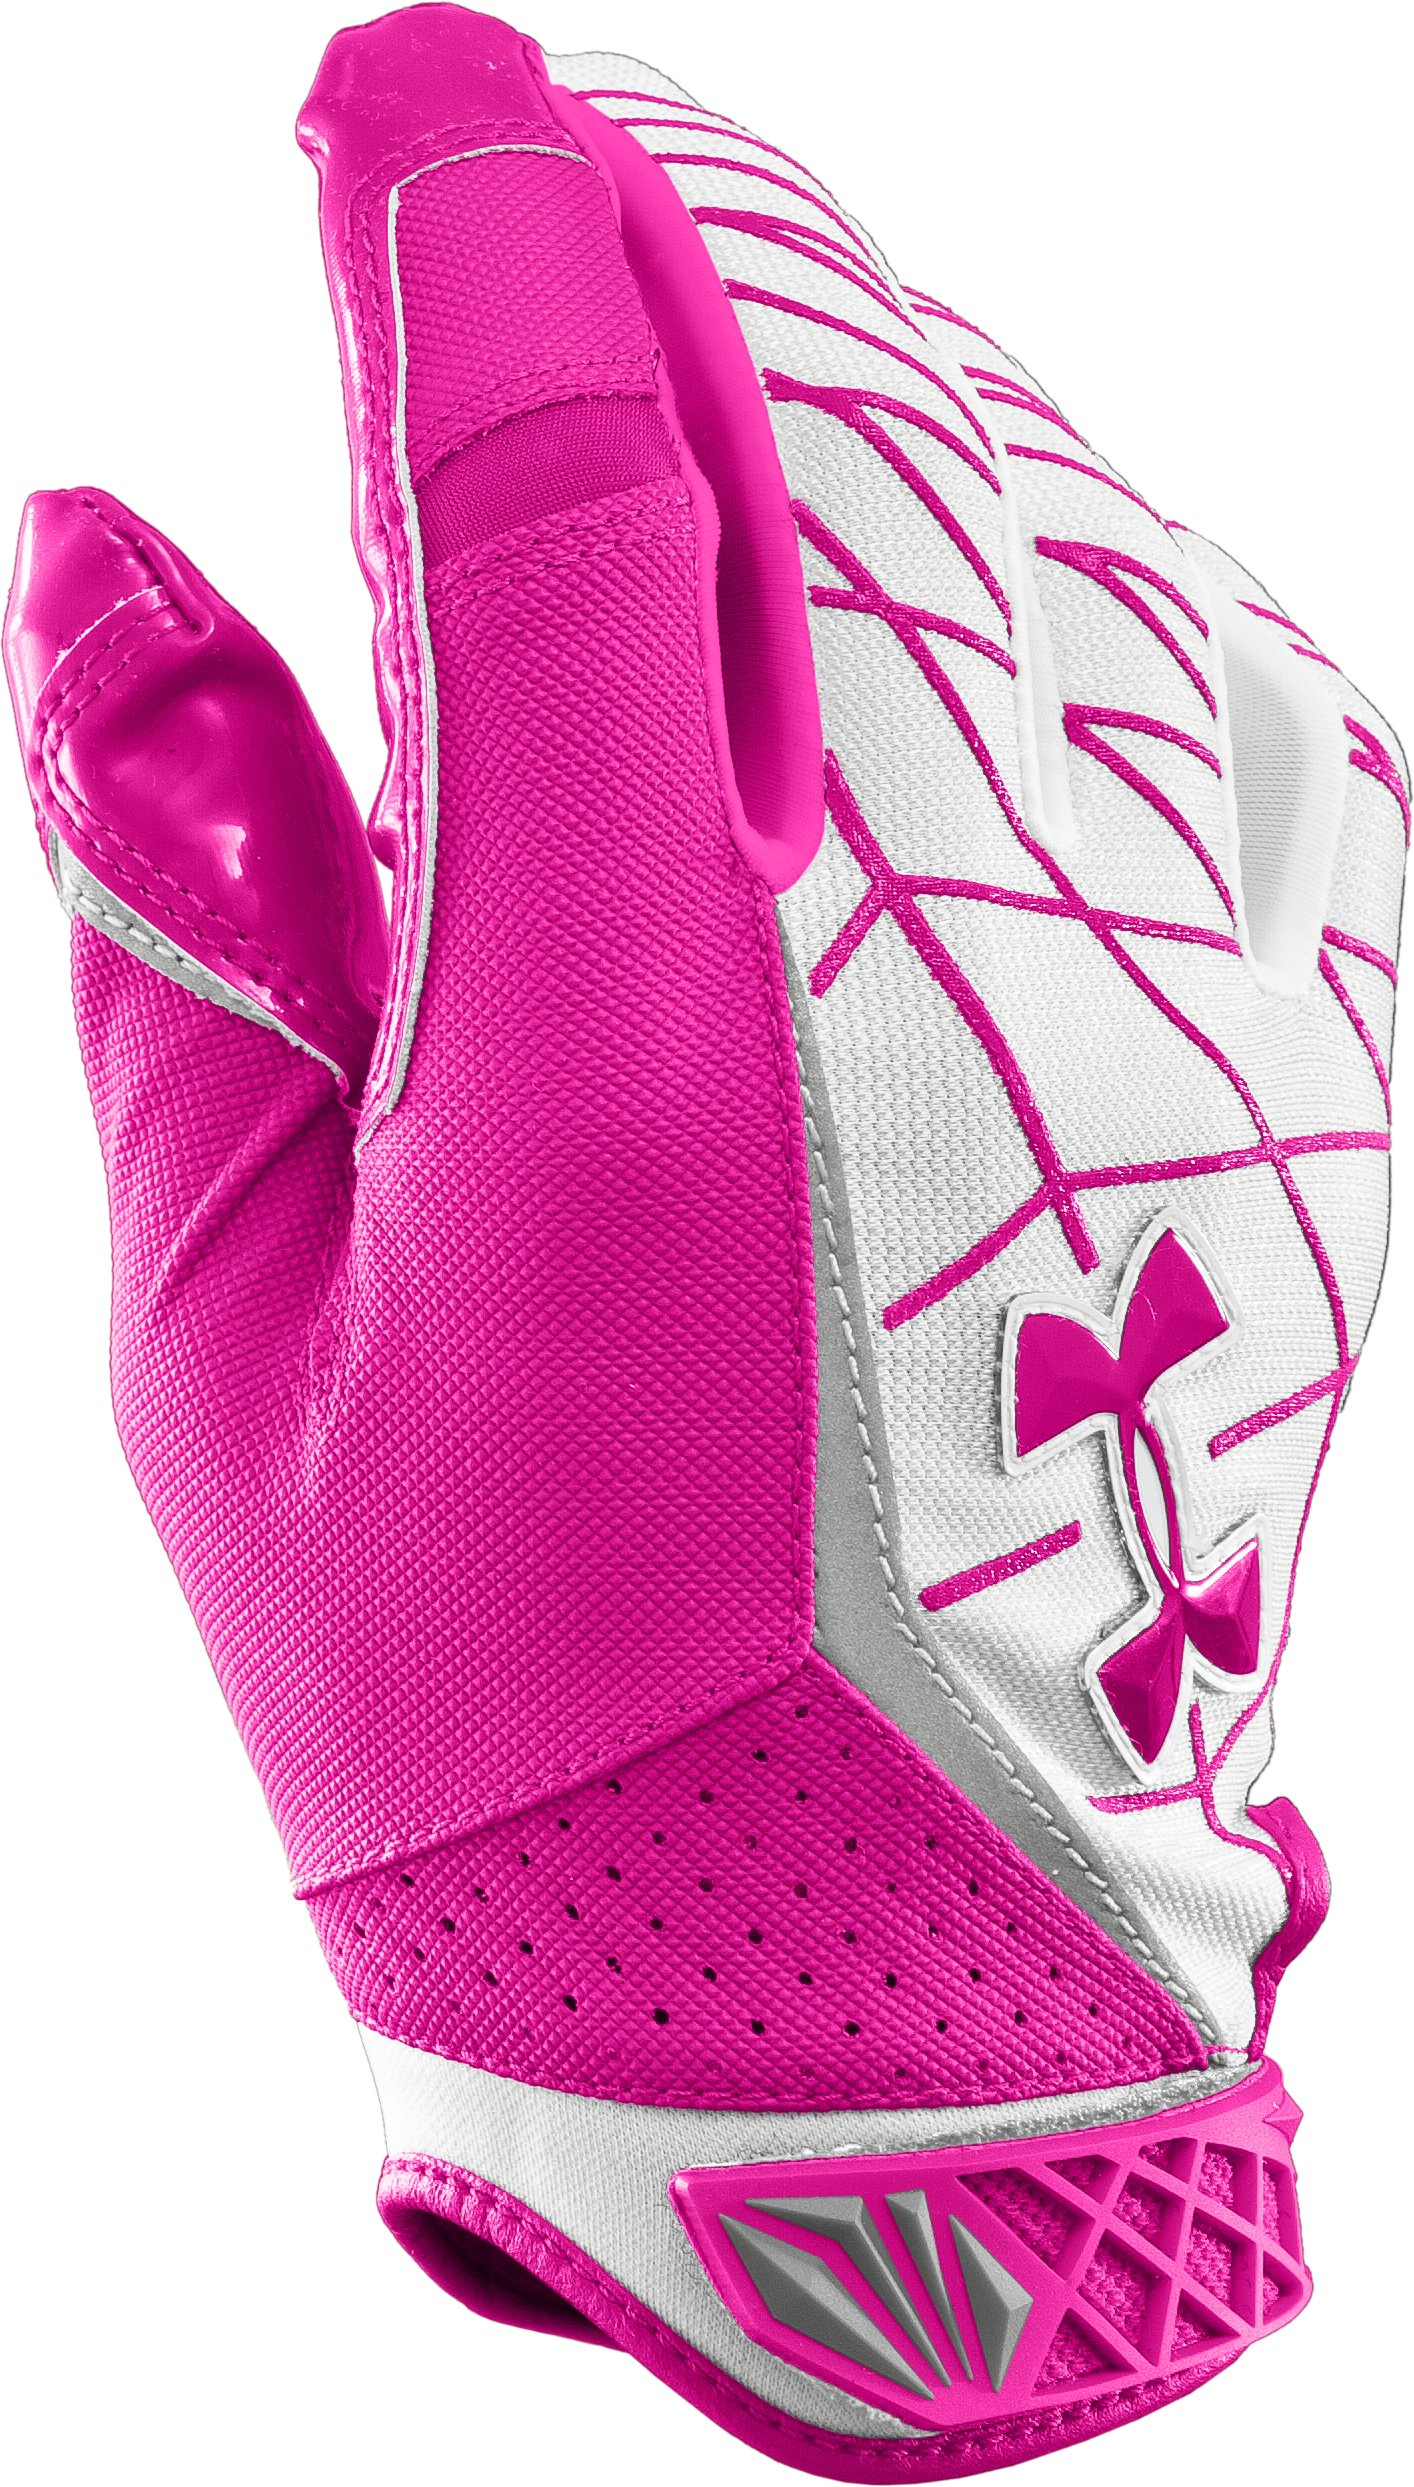 Men's UA Warp Speed Football Gloves, Tropic Pink, zoomed image